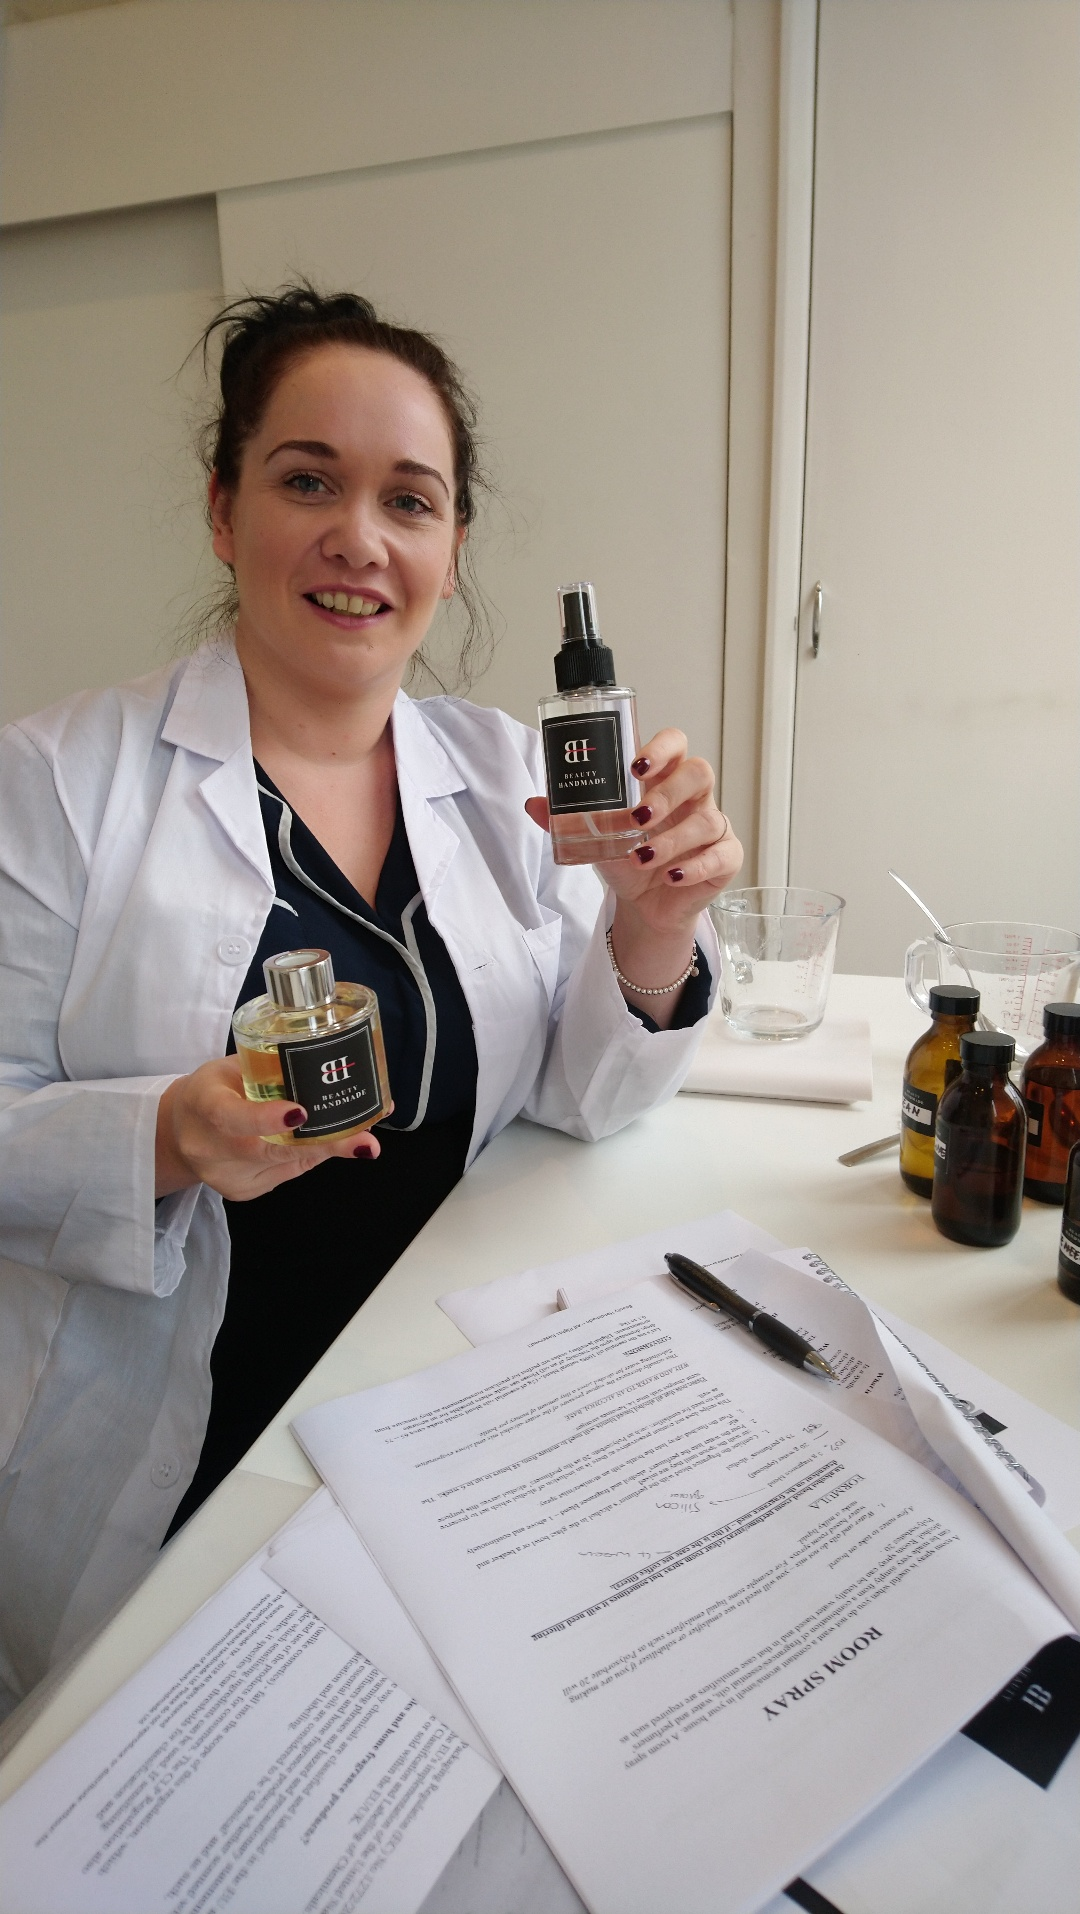 Student review of the Beauty Handmade Workshop